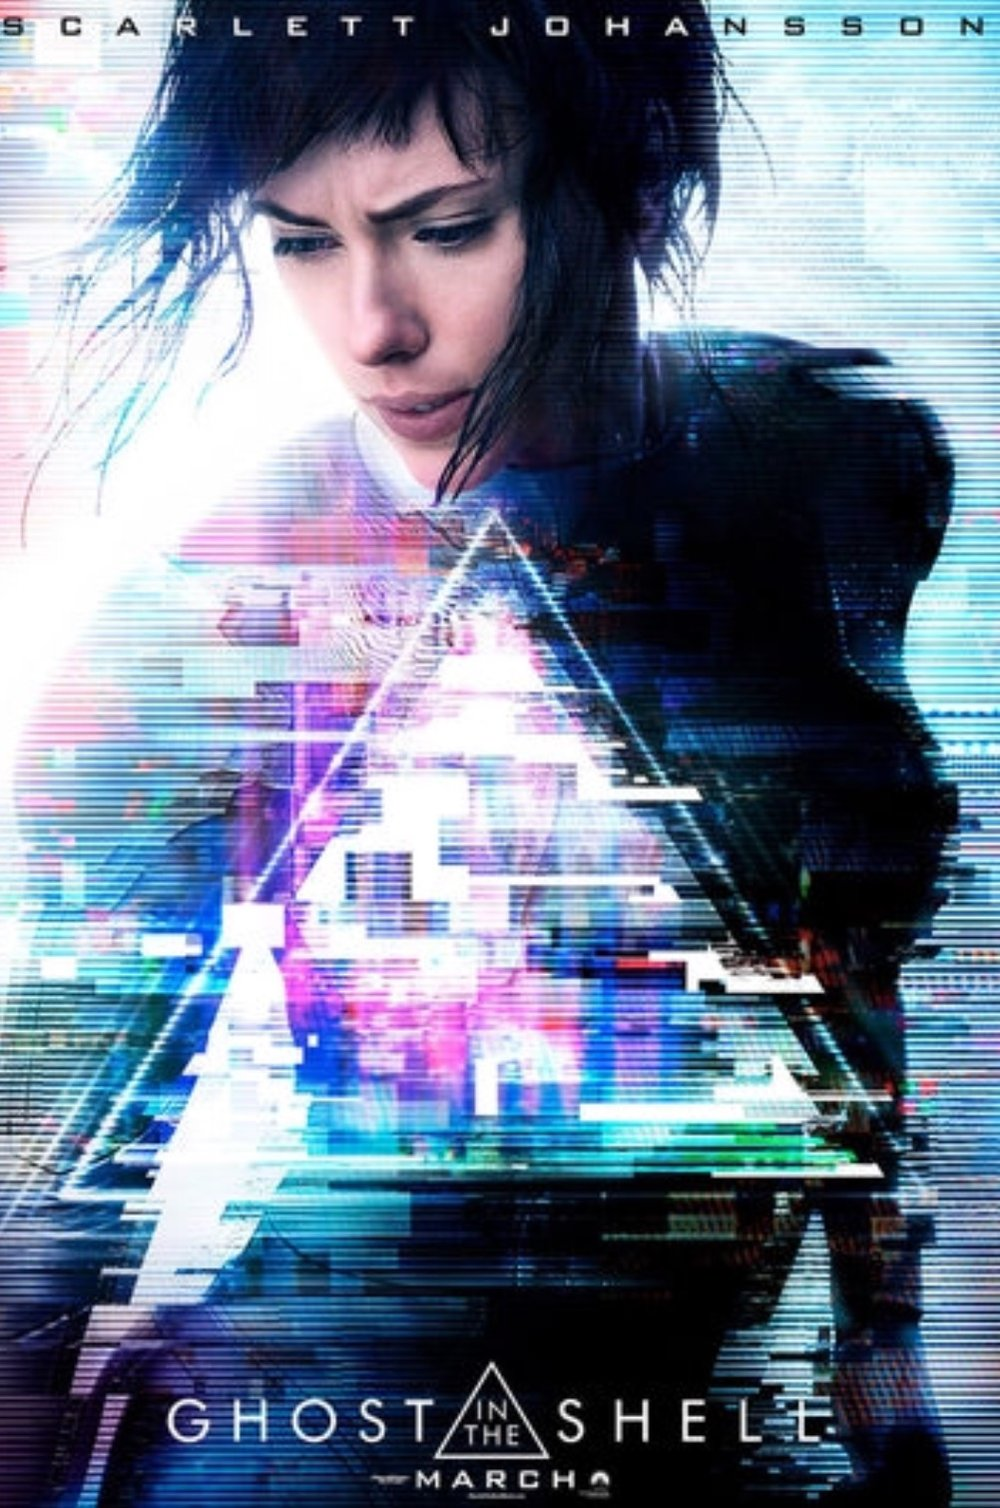 Ghost-in-the-shell-2017-3d-movie.JPG